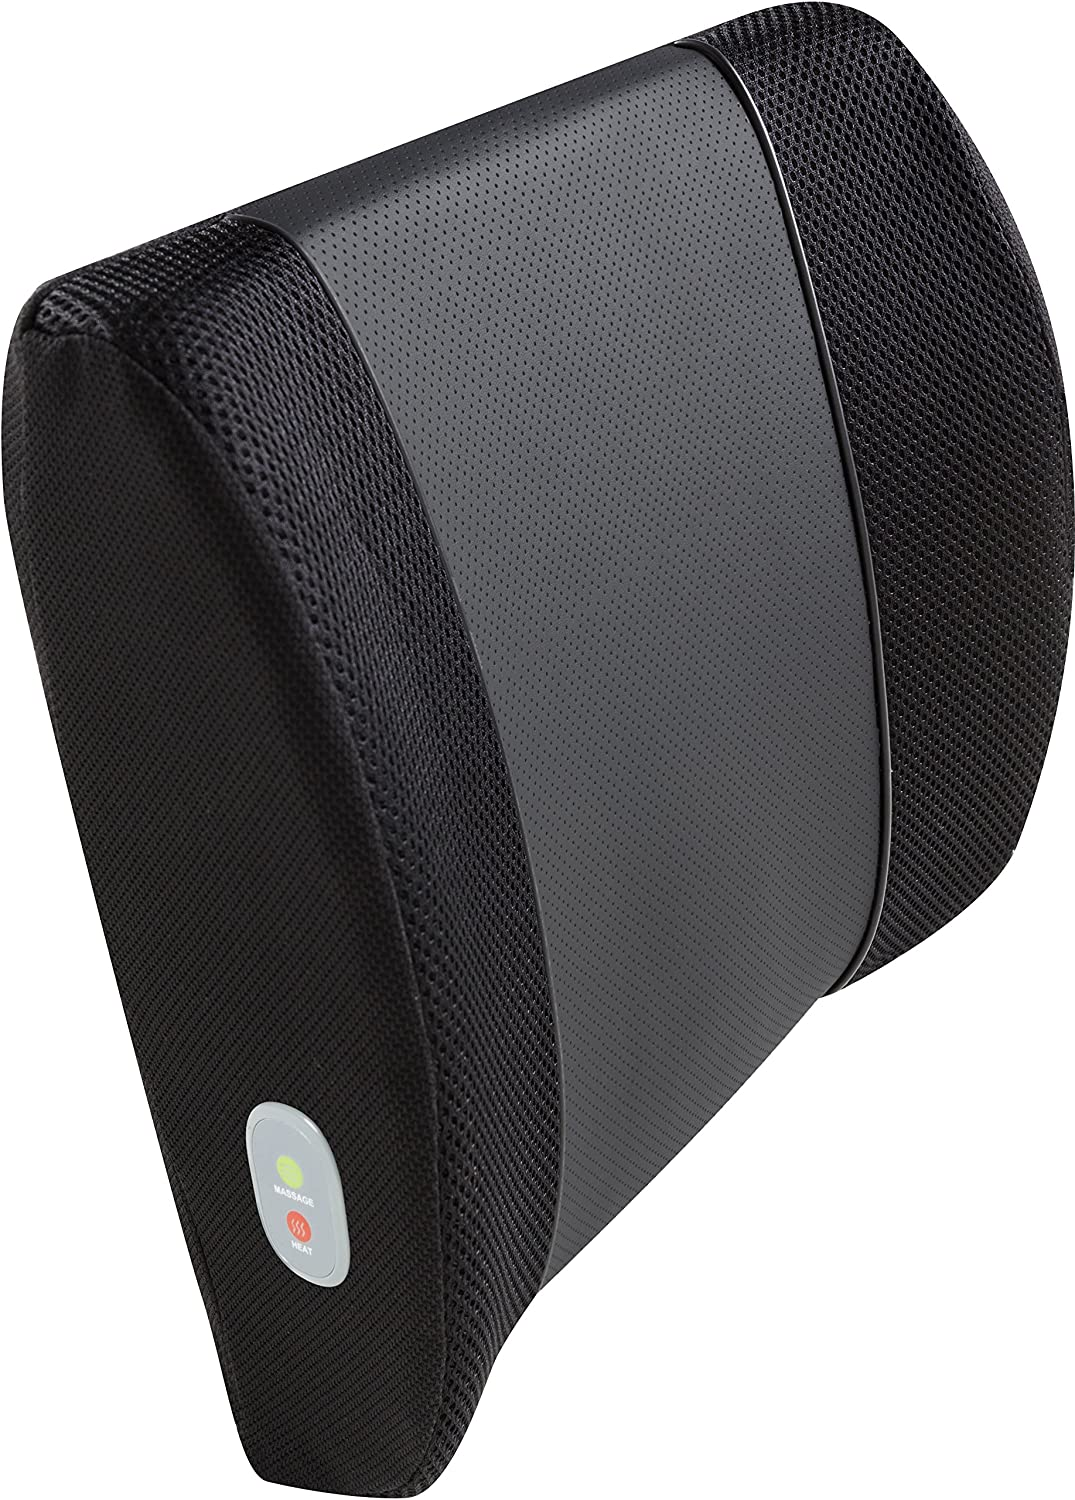 Relaxzen 3D Mesh and PU Massage Lumbar Support Cushion with Heat, Black